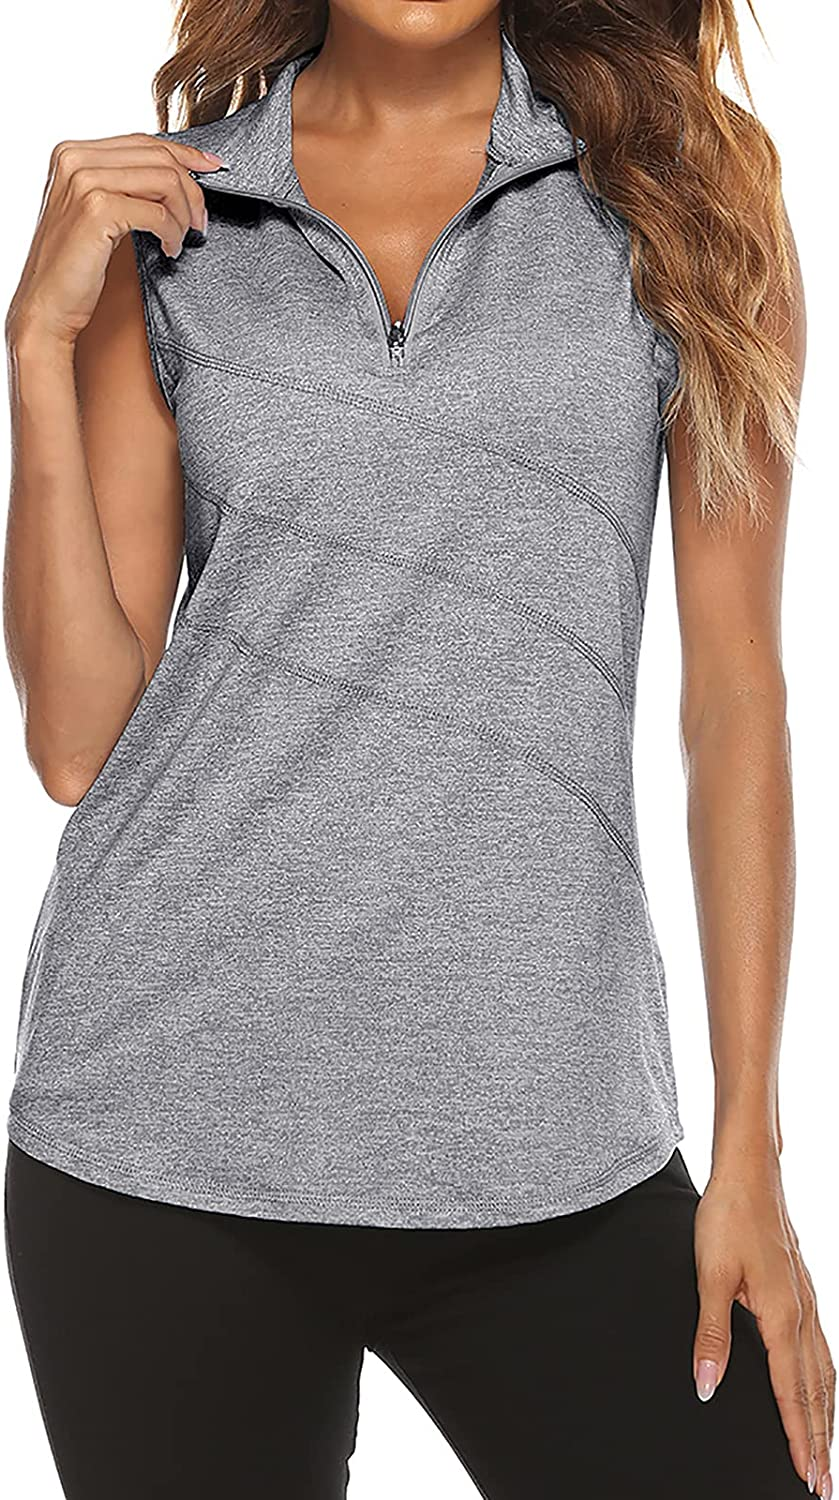 Under blast sales Tanst Sky Chicago Mall Women's Zip Up Tank Workout Sleevel Tops Quick Dry Top